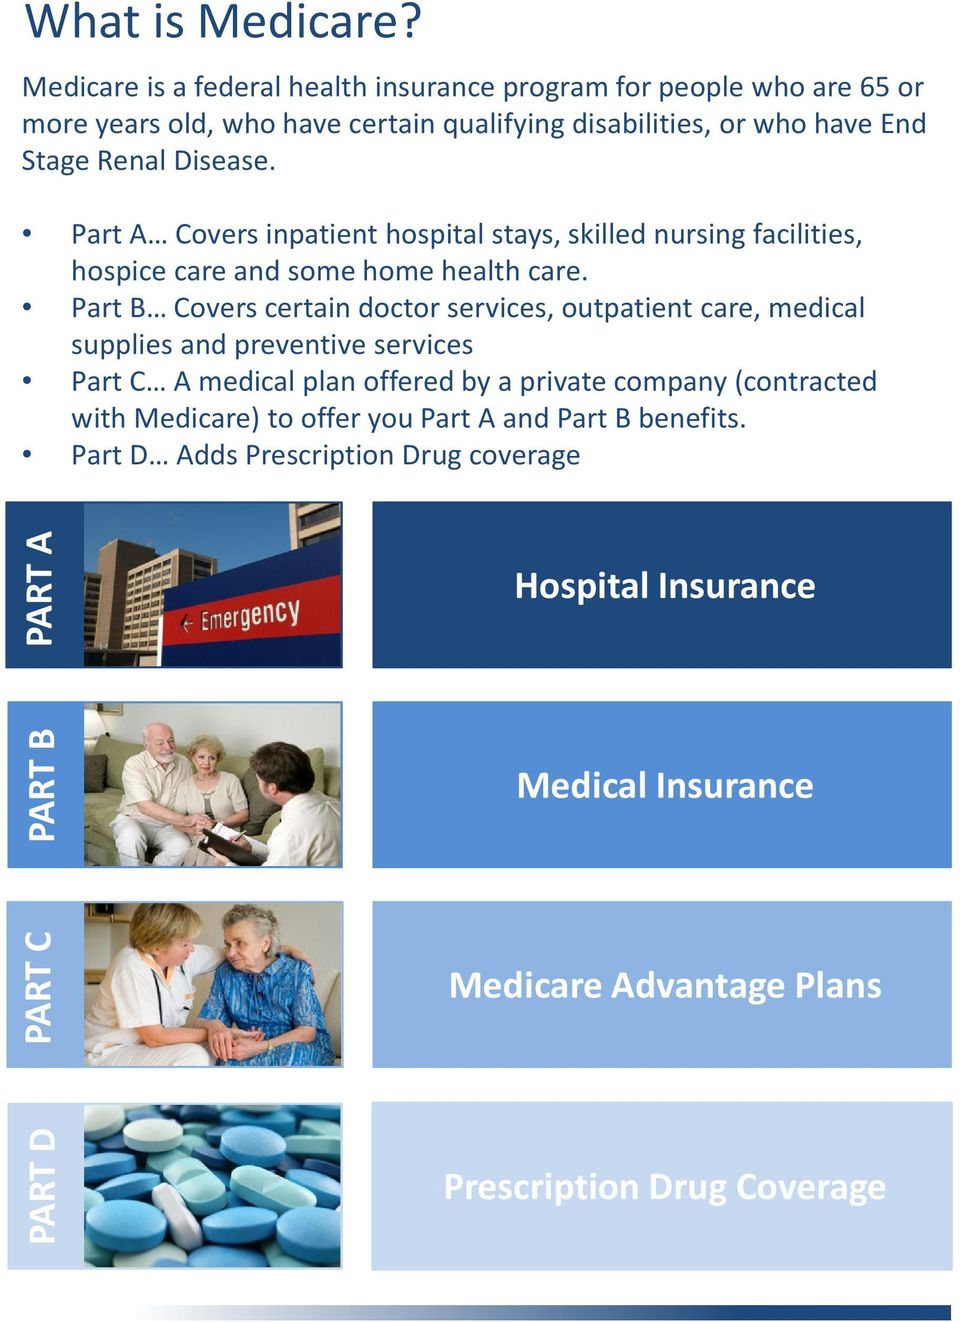 Part A Covers inpatient hospital stays, skilled nursing facilities, hospice care and some home health care.